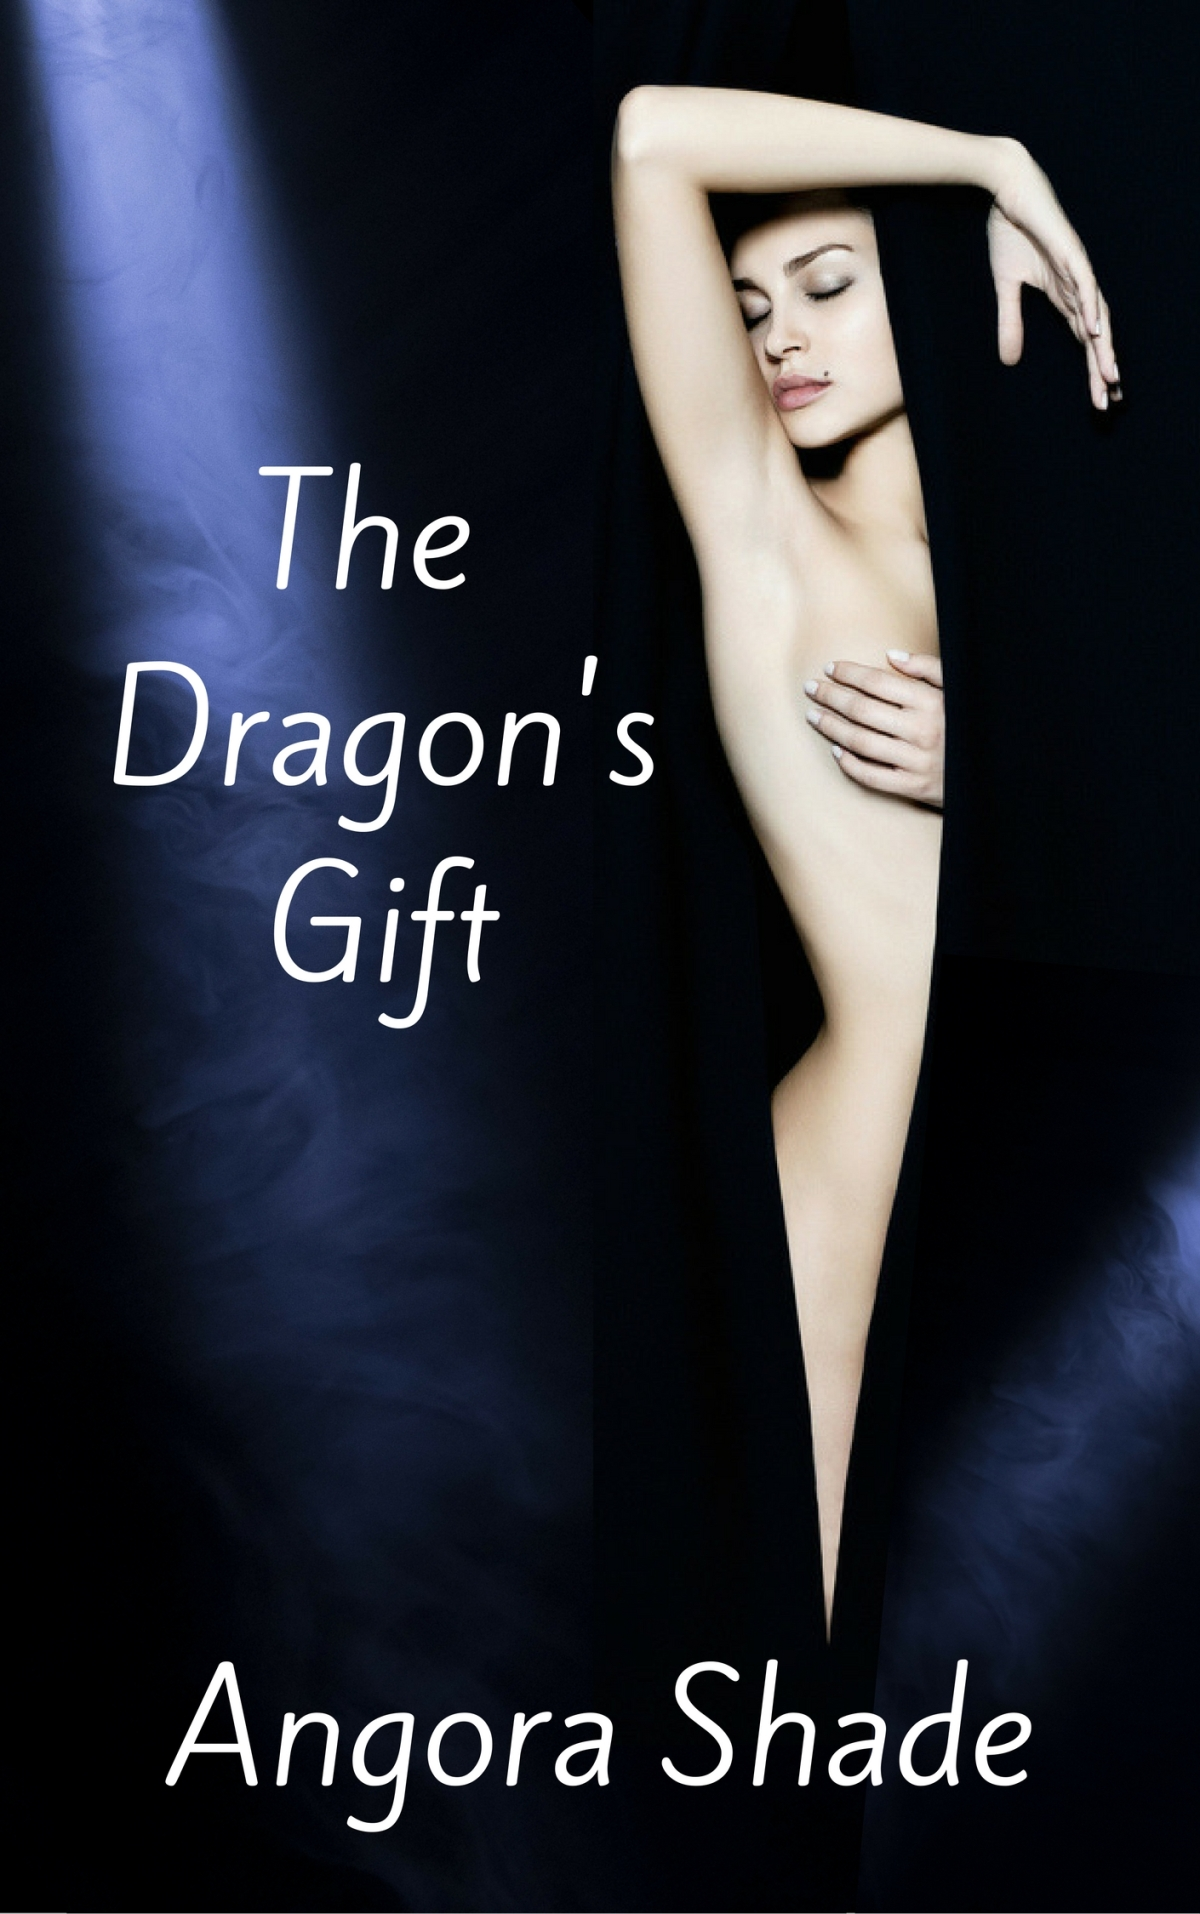 The Dragon's Gift by Angora Shade